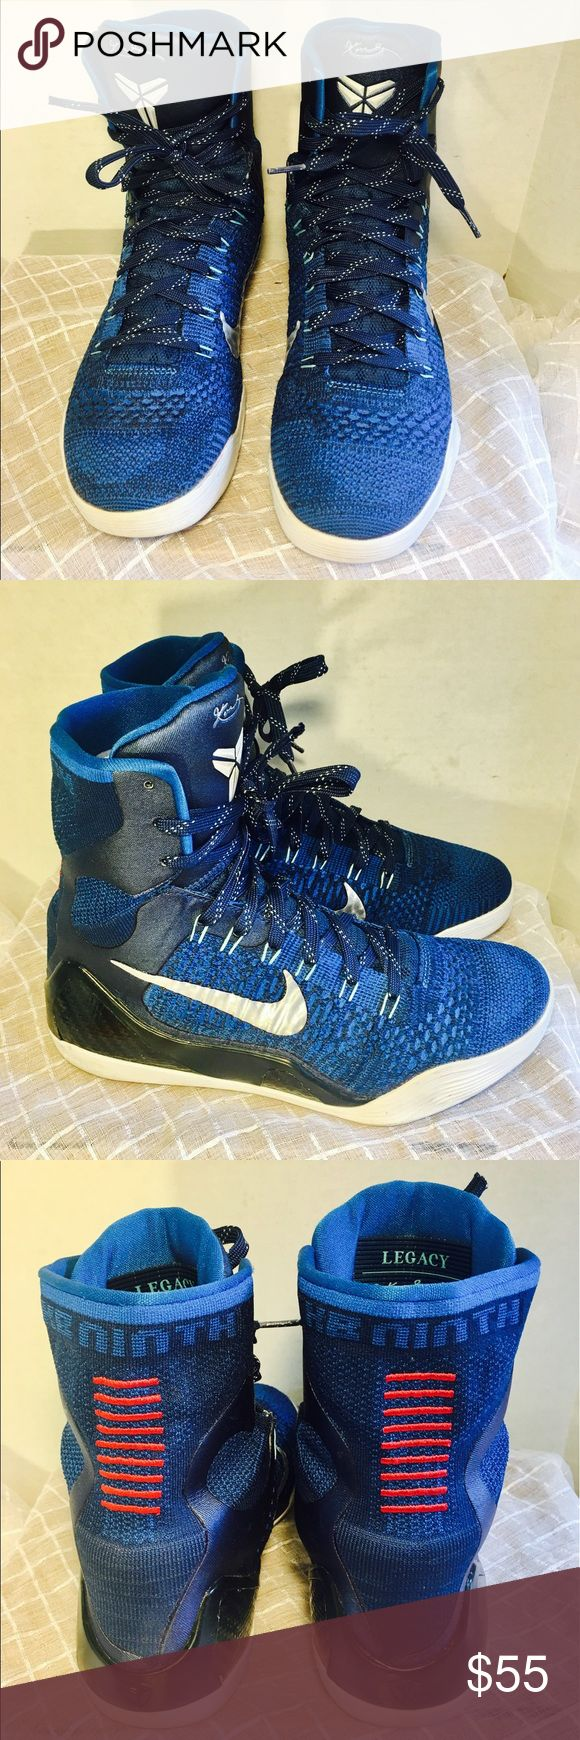 NIKE KOBE ELITE LEGACY 9 BRAVE BLUE DESIGNER--NIKE.                                                                                    STYLE----KOBE.                                                                               GOOD CONDITION.                                                                       SMOKE FREE HOME Nike Shoes Sneakers